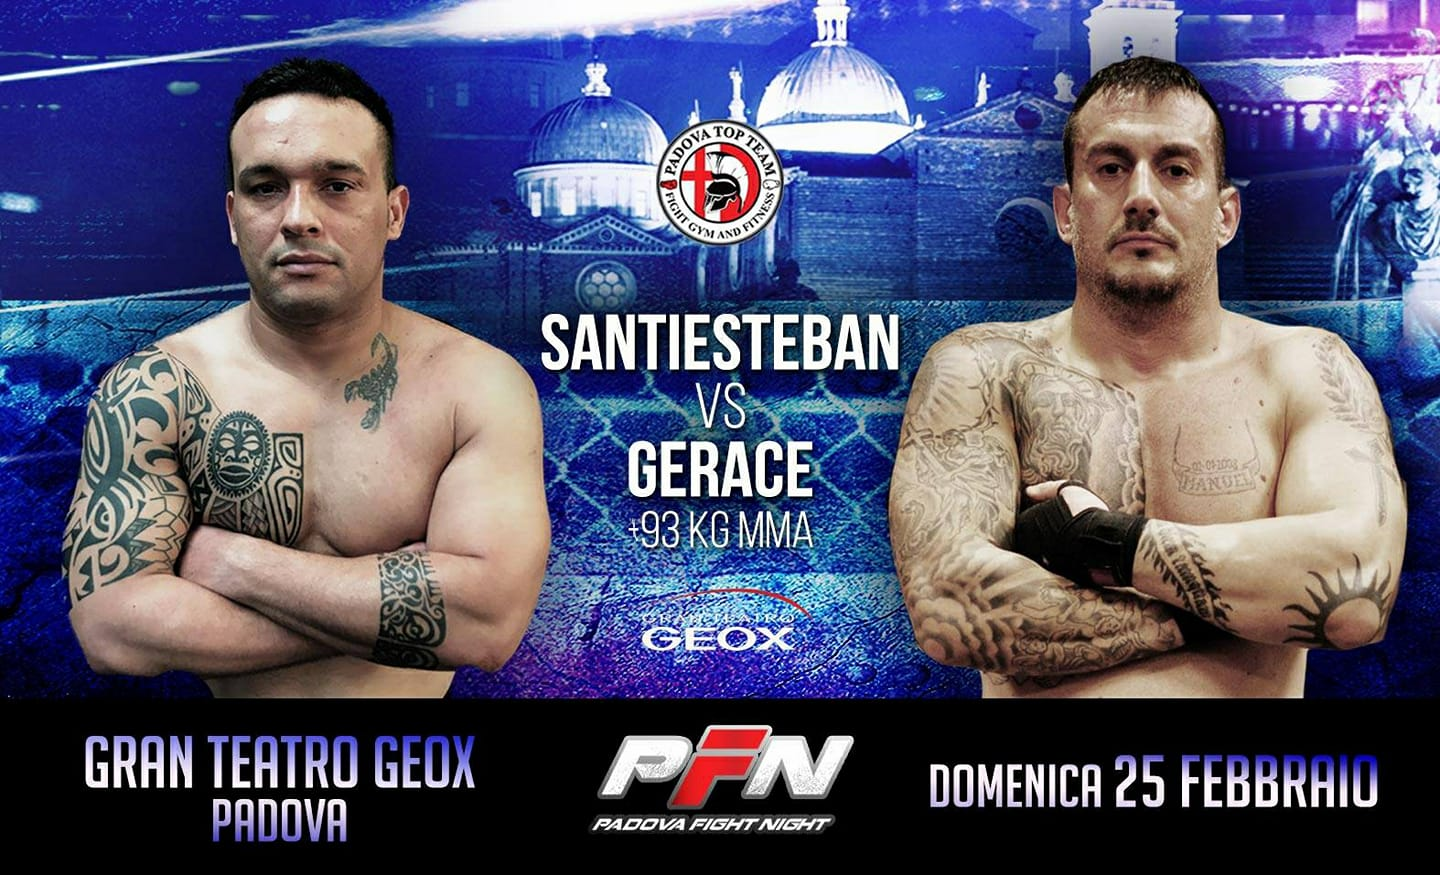 PADOVA FIGHT NIGHT 5